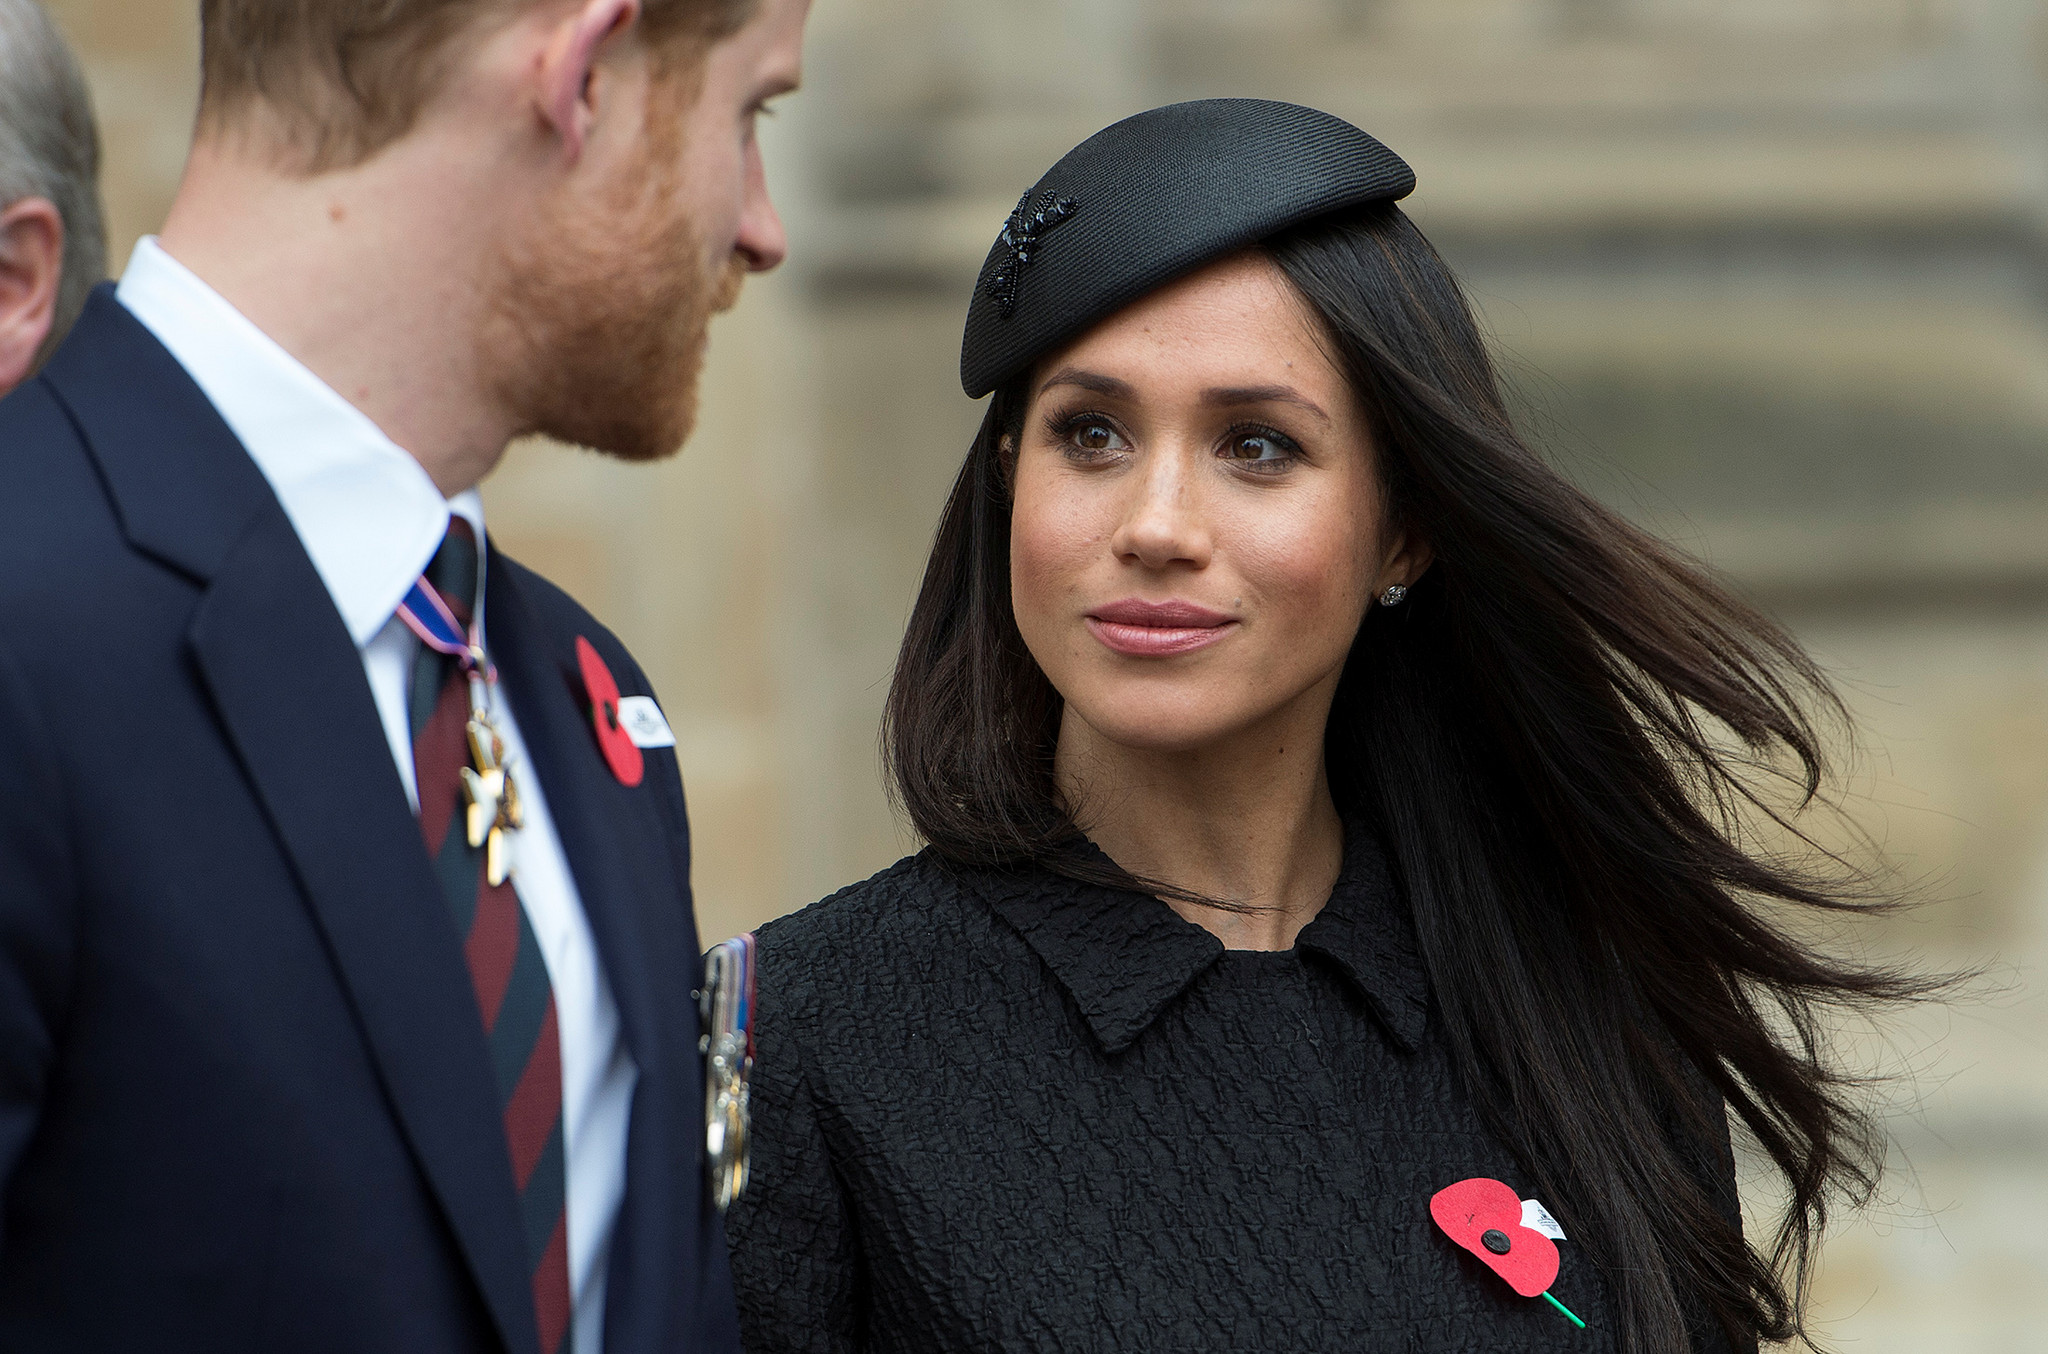 2018-04-25T145211Z_1169290730_RC1EE88D27F0_RTRMADP_3_ANZAC-DAY-ROYALS.JPG